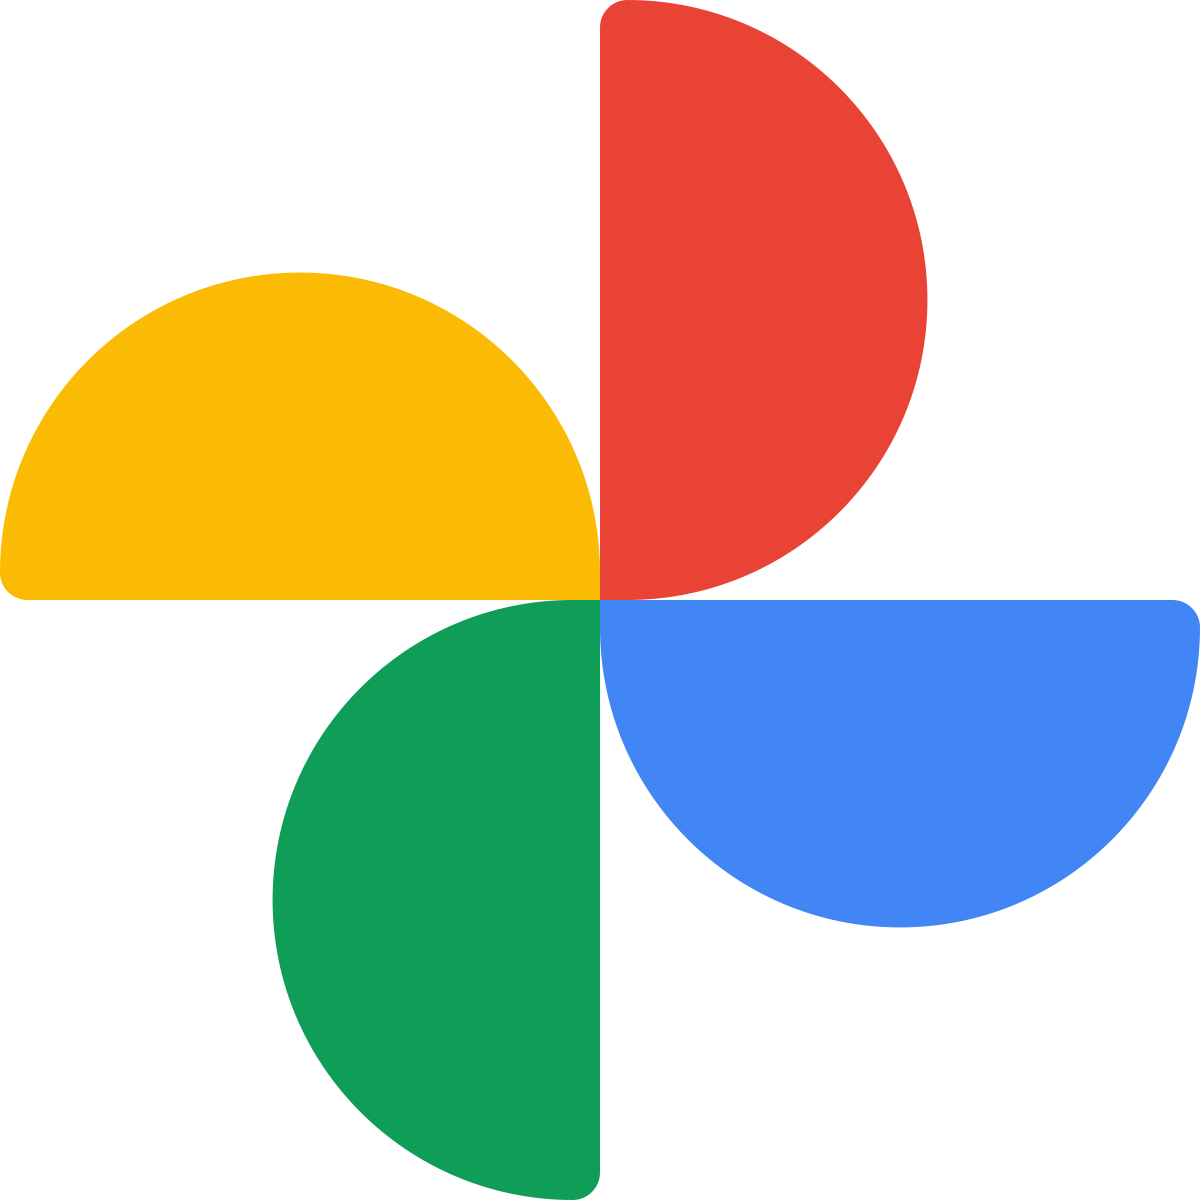 2020 Google Photos icon